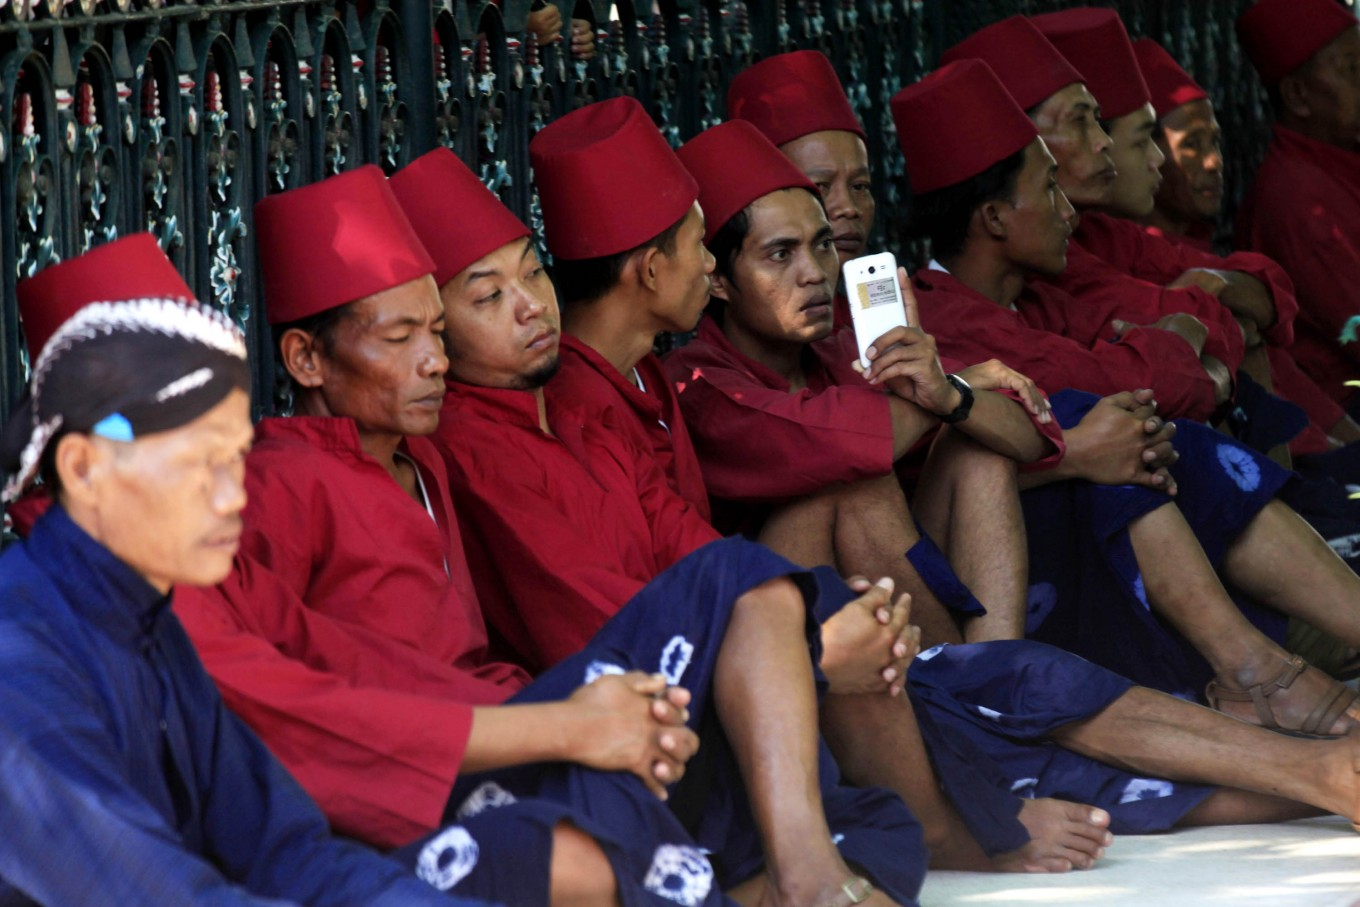 Scrambling for blessings at Yogya's Grebeg Syawal ritual